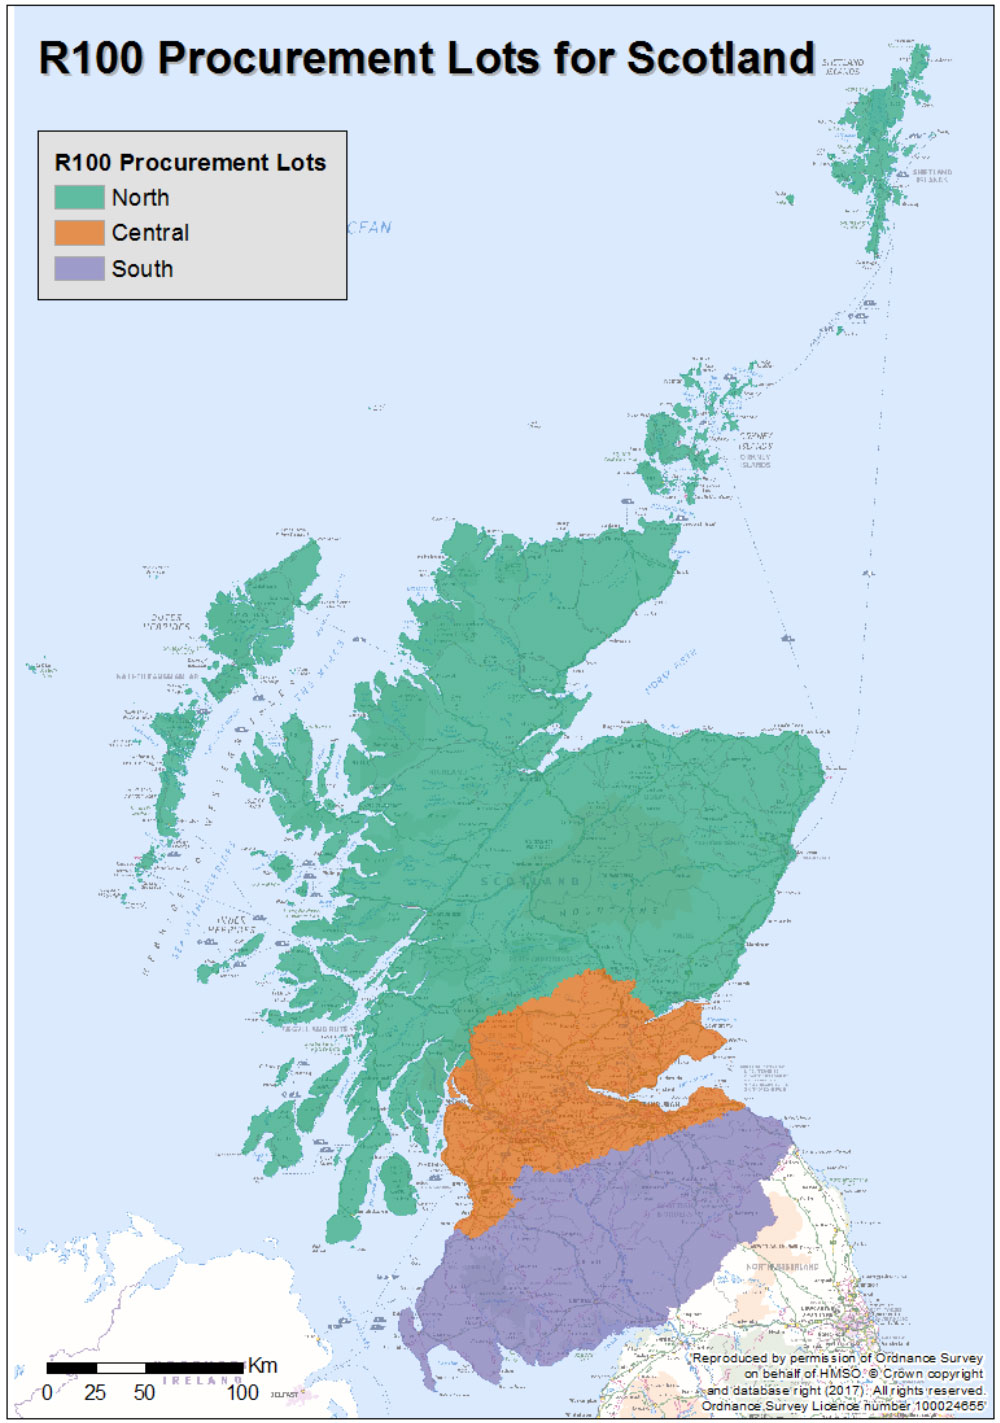 Map - R100 Procurement Lots for Scotland